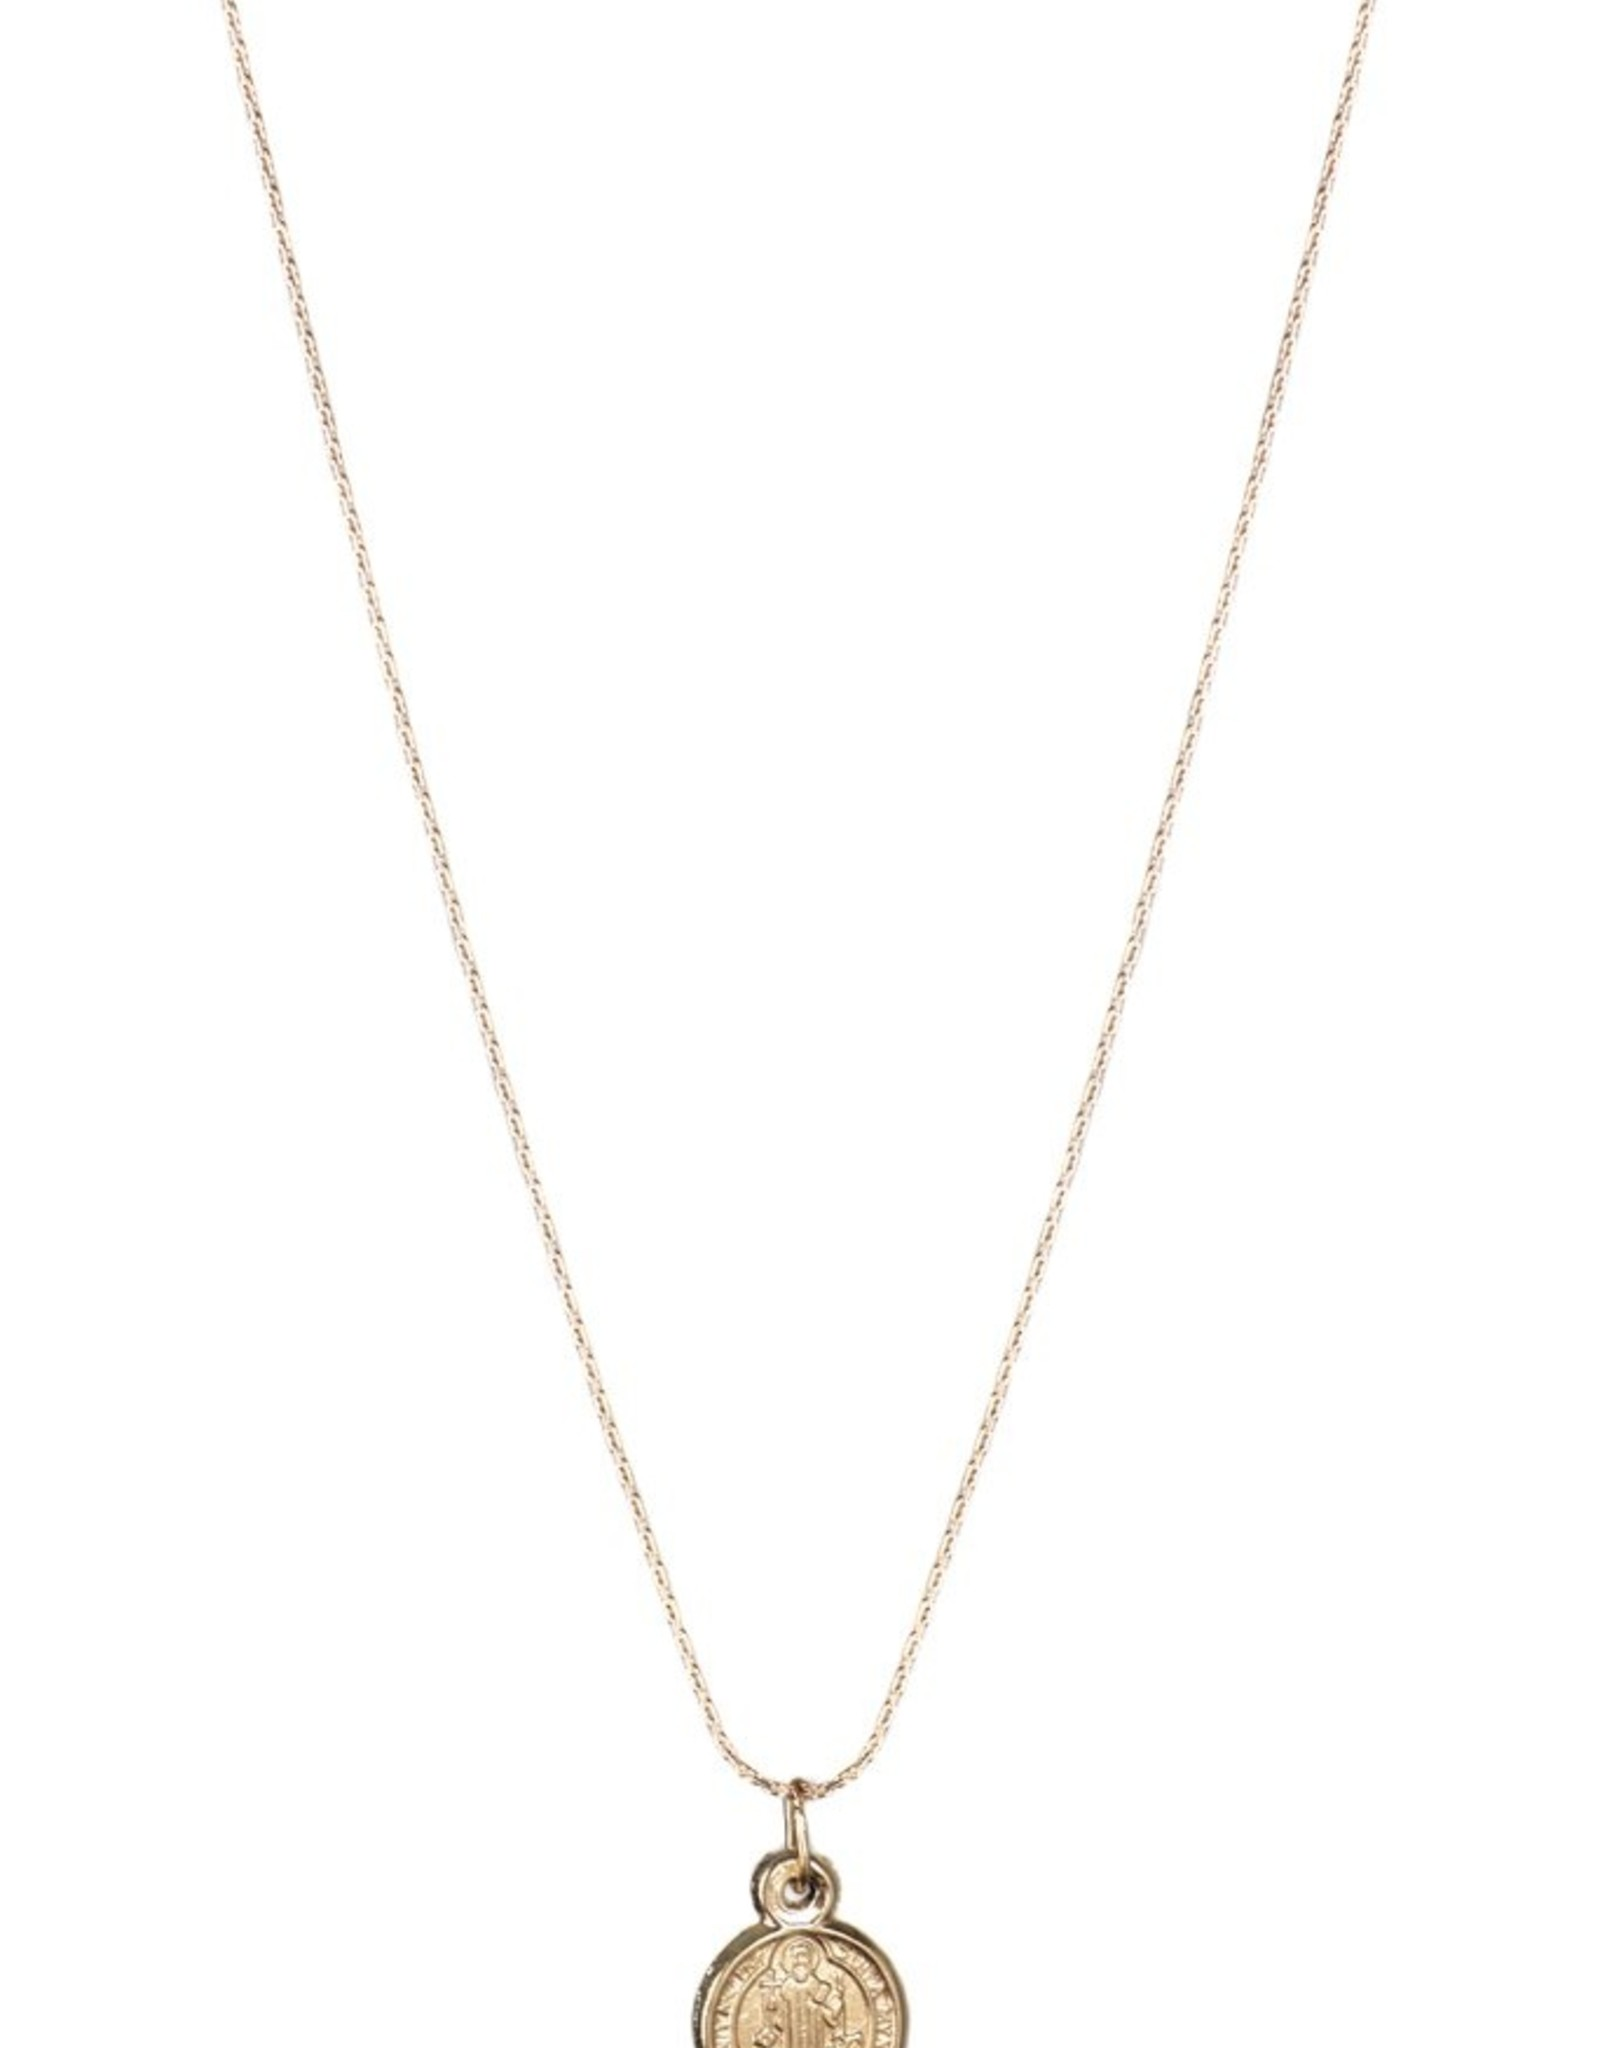 Lisbeth Roma Necklace Gold Fill